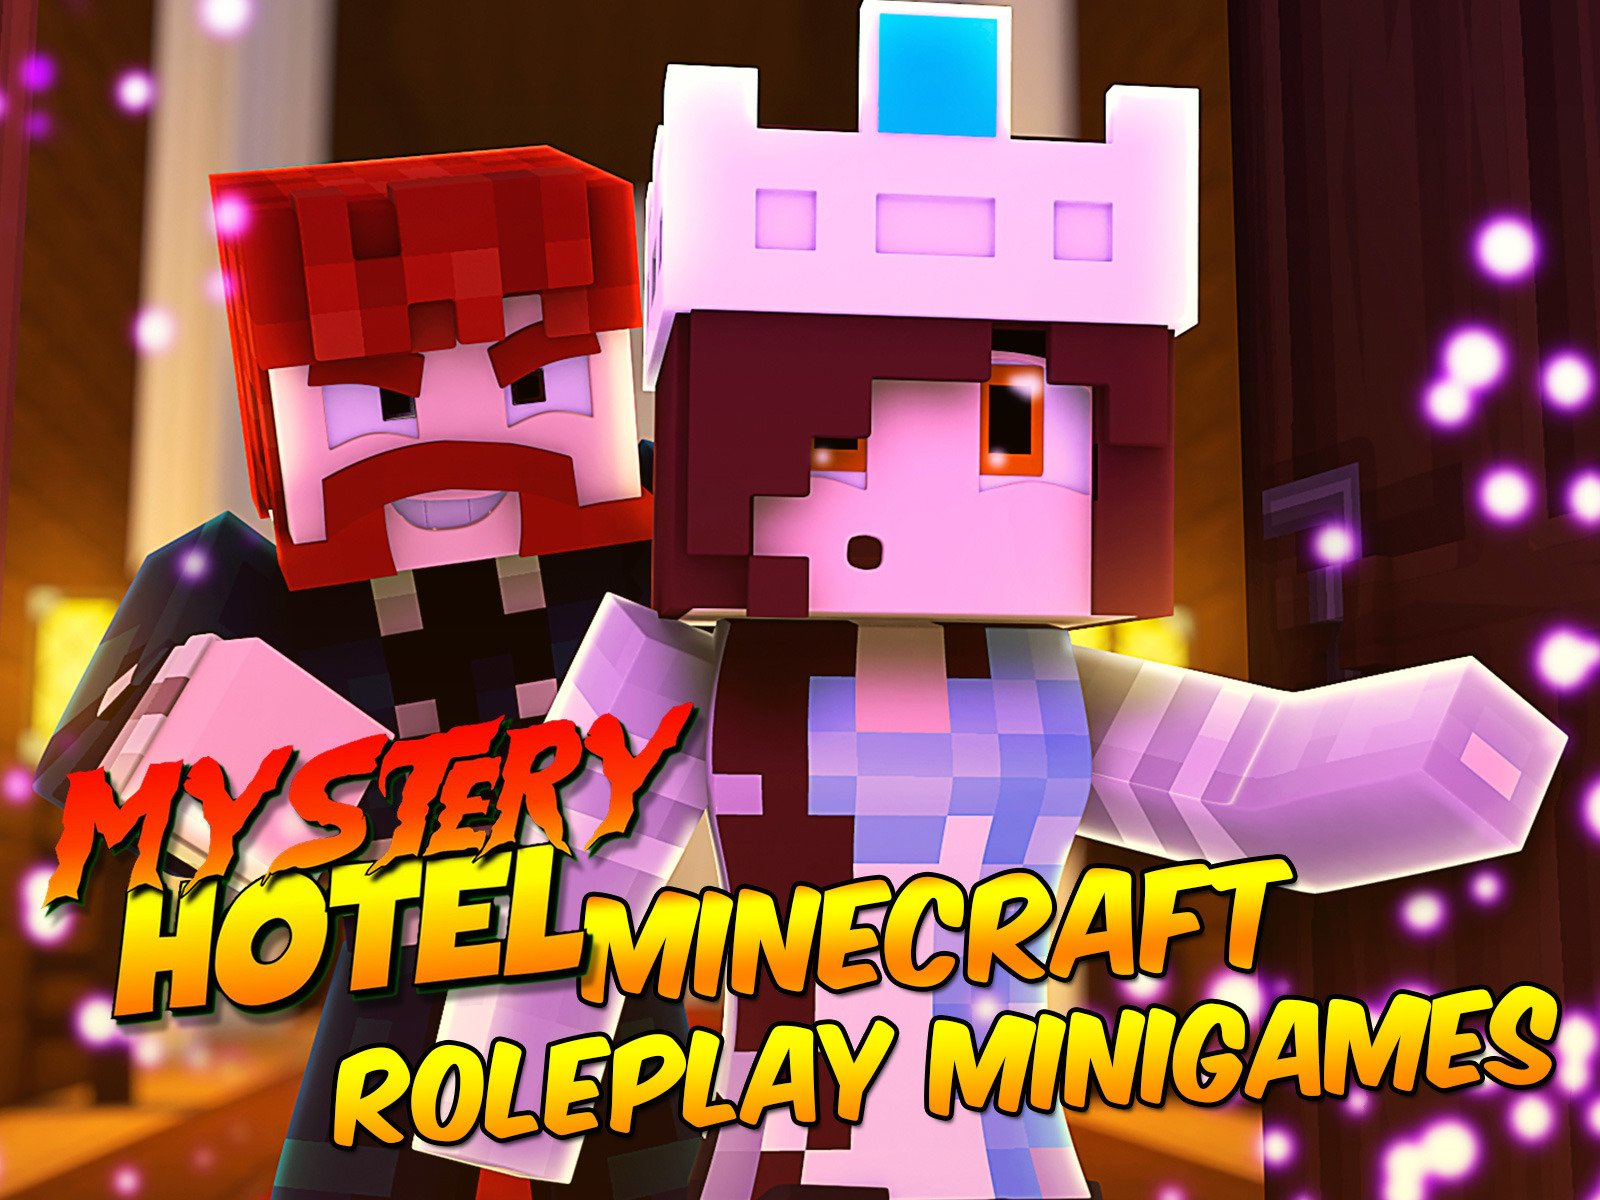 Clip: Mystery Hotel (Minecraft Roleplay Minigames)